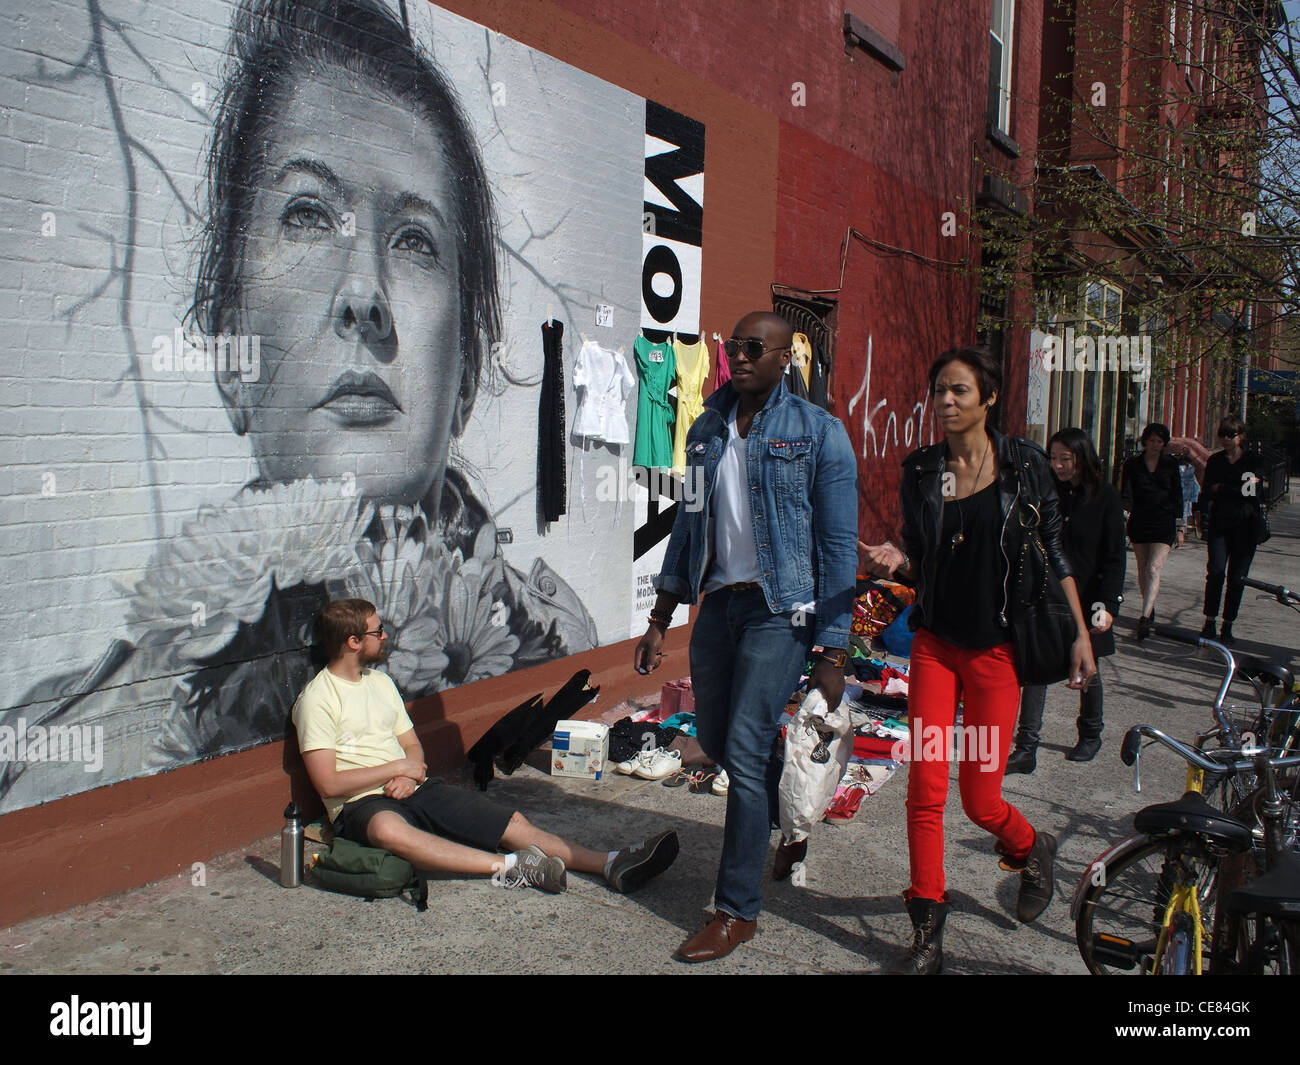 Street Vendors And Passers By Next To Mural Of Body Artist Marina Stock Photo 43205139 Alamy